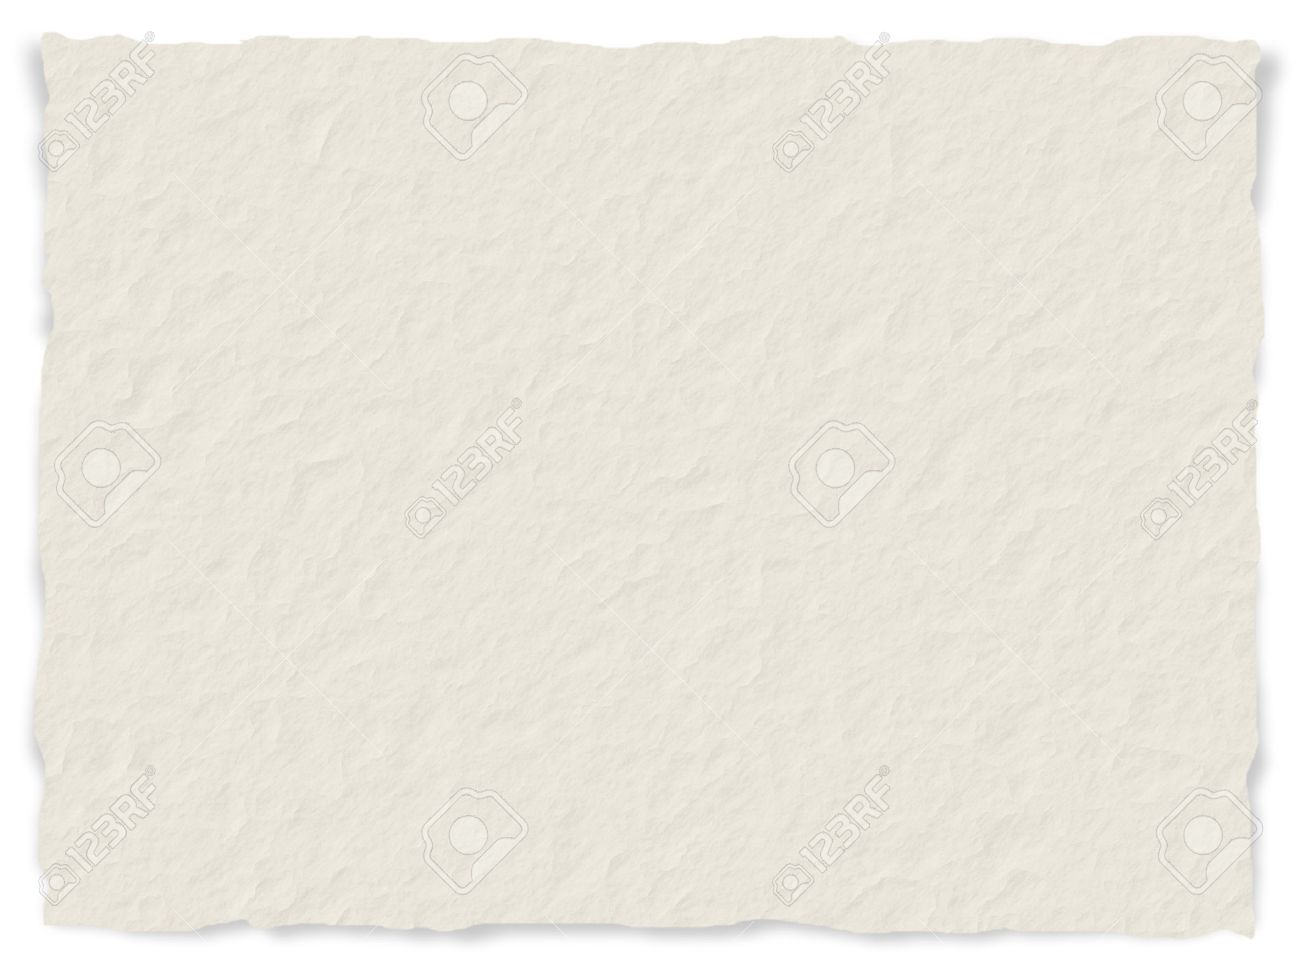 Torn Paper Texture - Torn Paper Texture With Frayed Edges - Digital Generated Stock ...